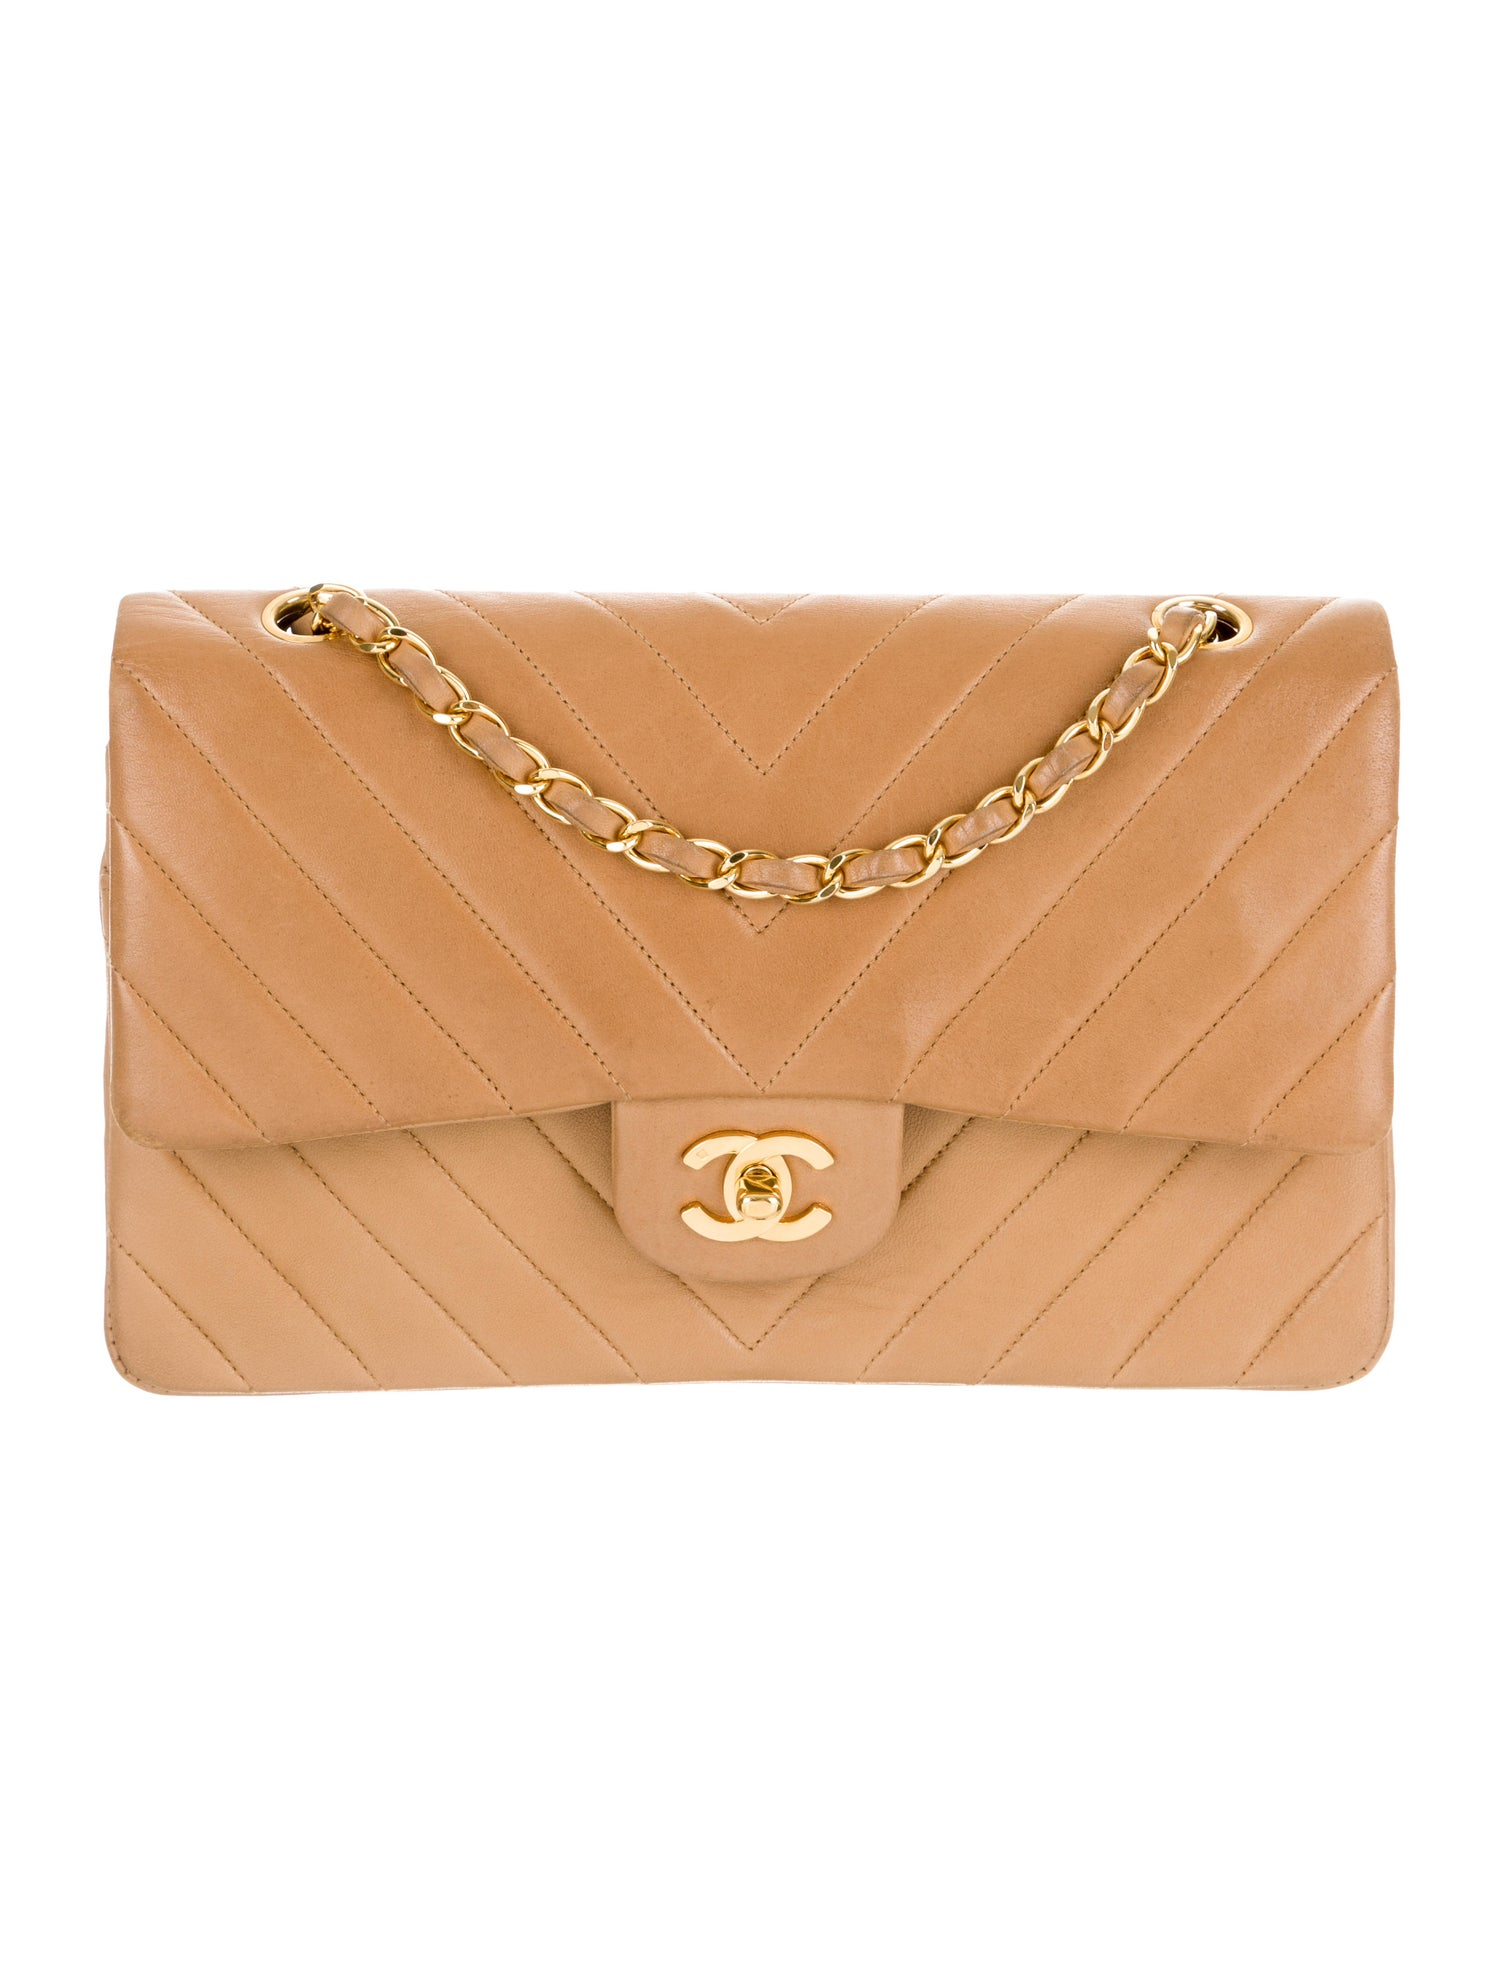 you know we can't resist this  vintage chanel !